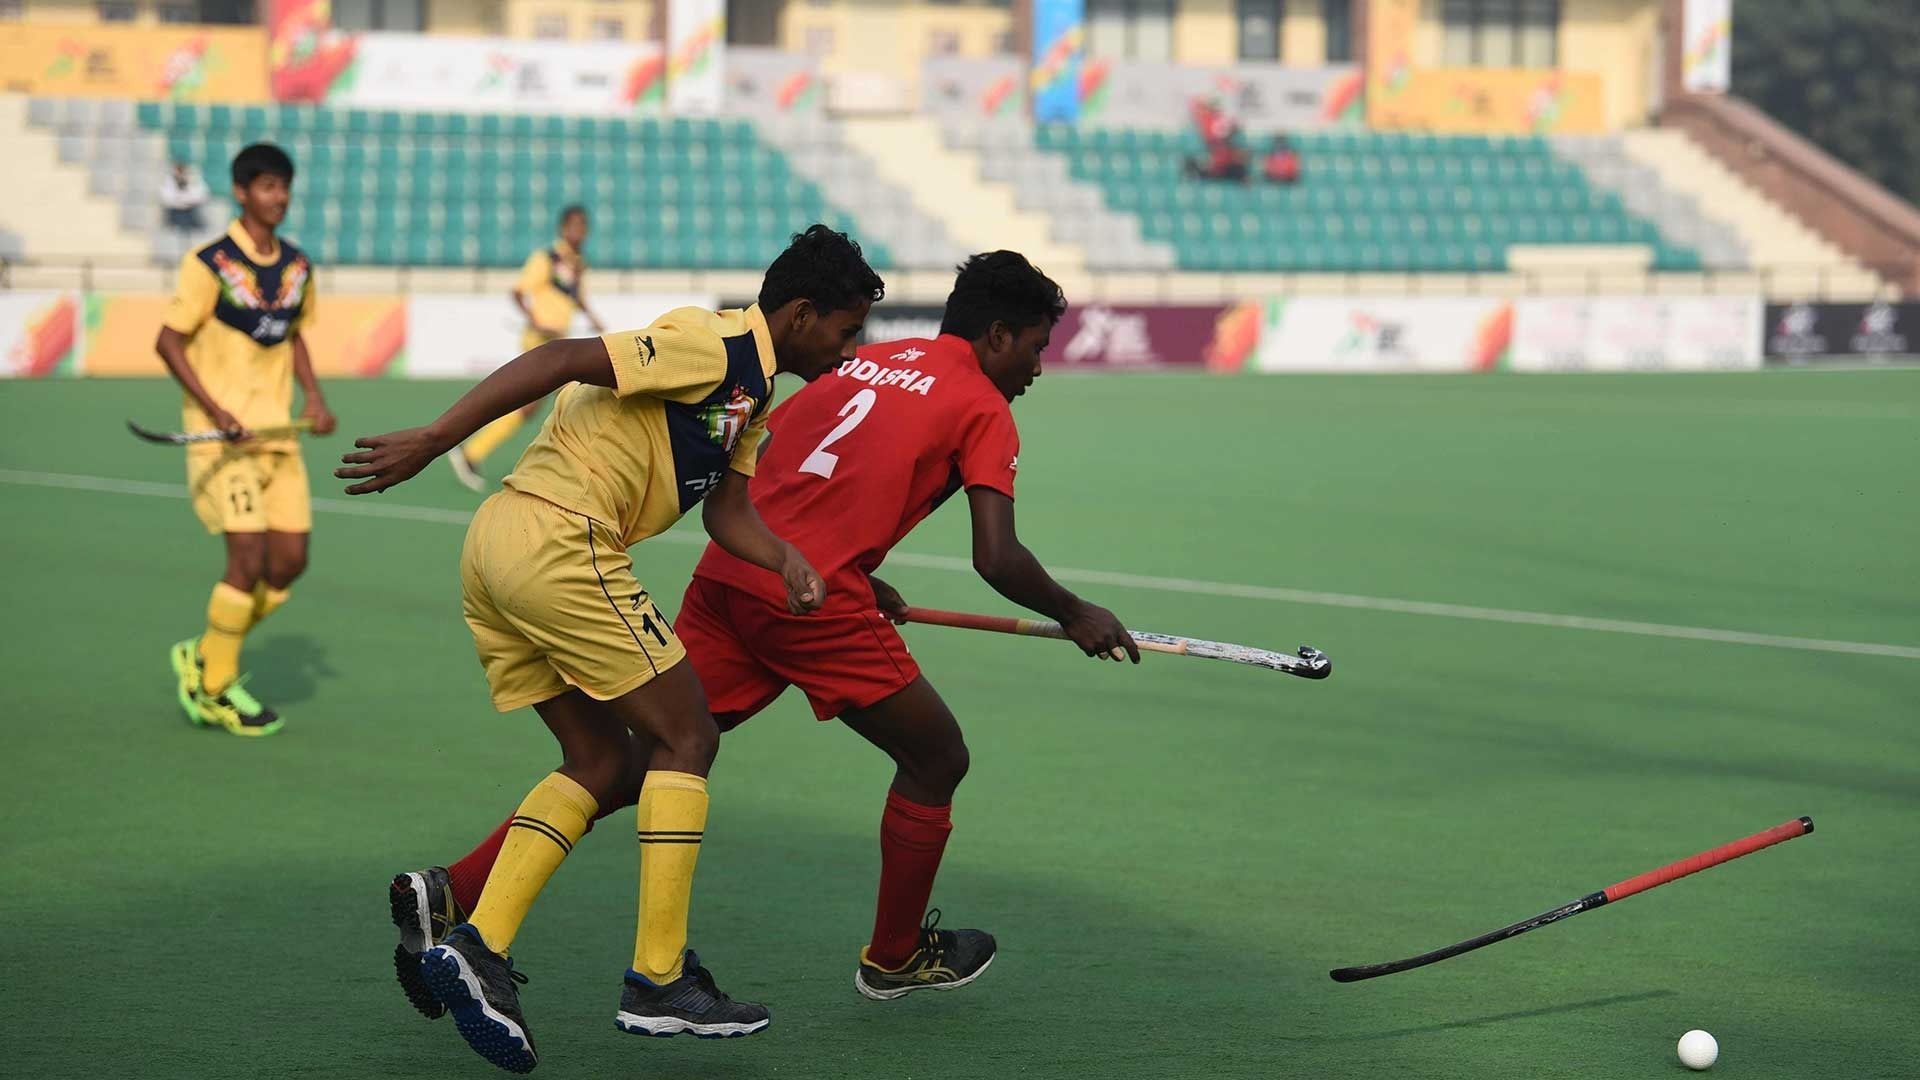 Odds favour Odisha boys as they take on Uttar Pradesh in the semi final of the hockey competition of Khelo India School Games at Dhyan Chand National Stadium New Delhi on Wednesday.